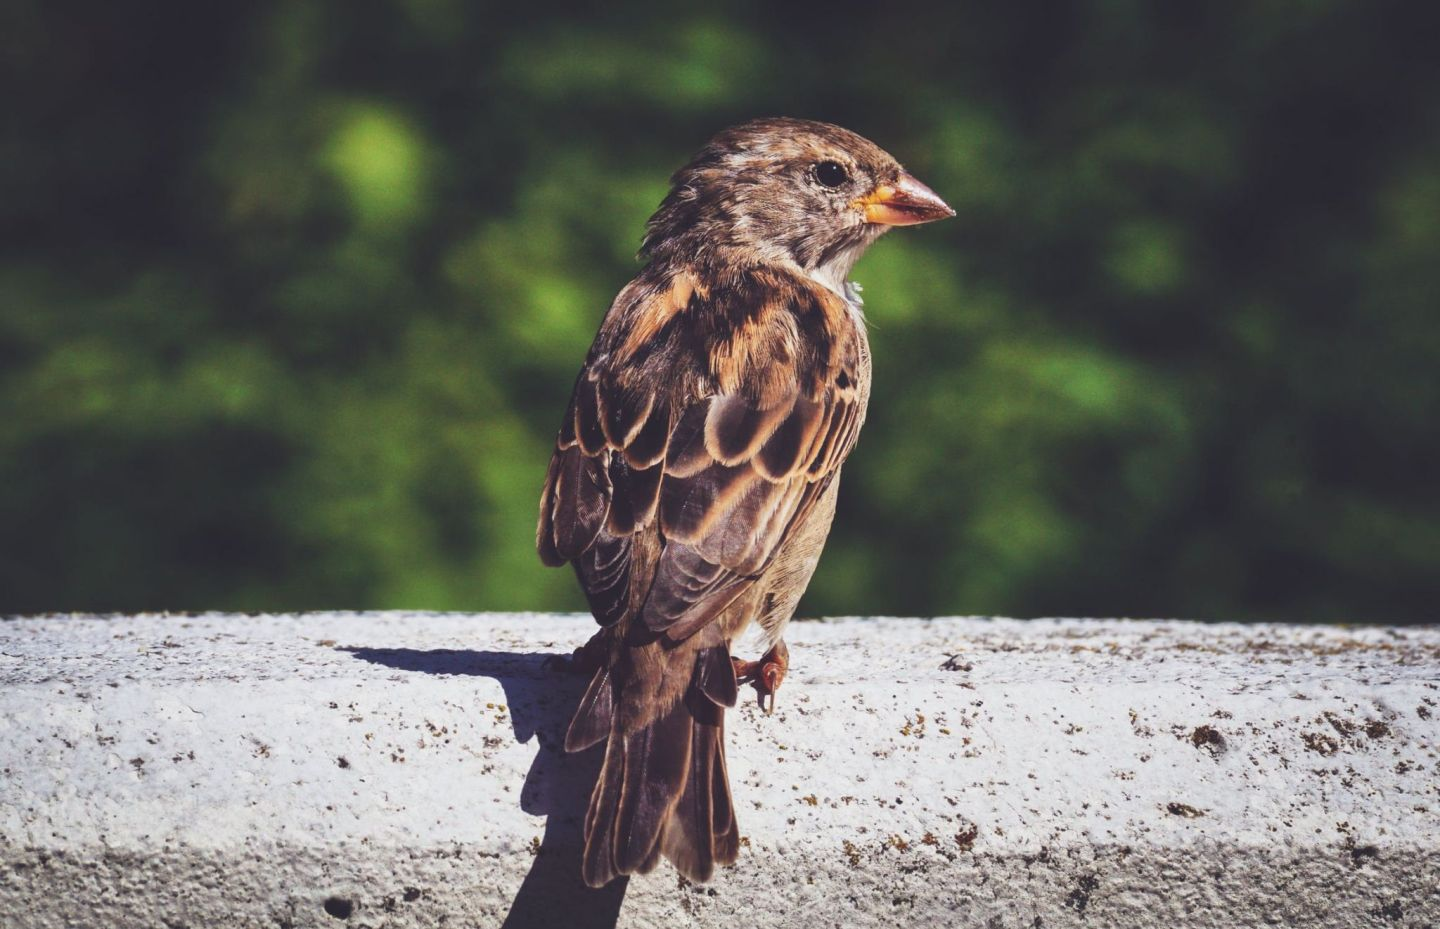 The Ingenuity of a Sparrow